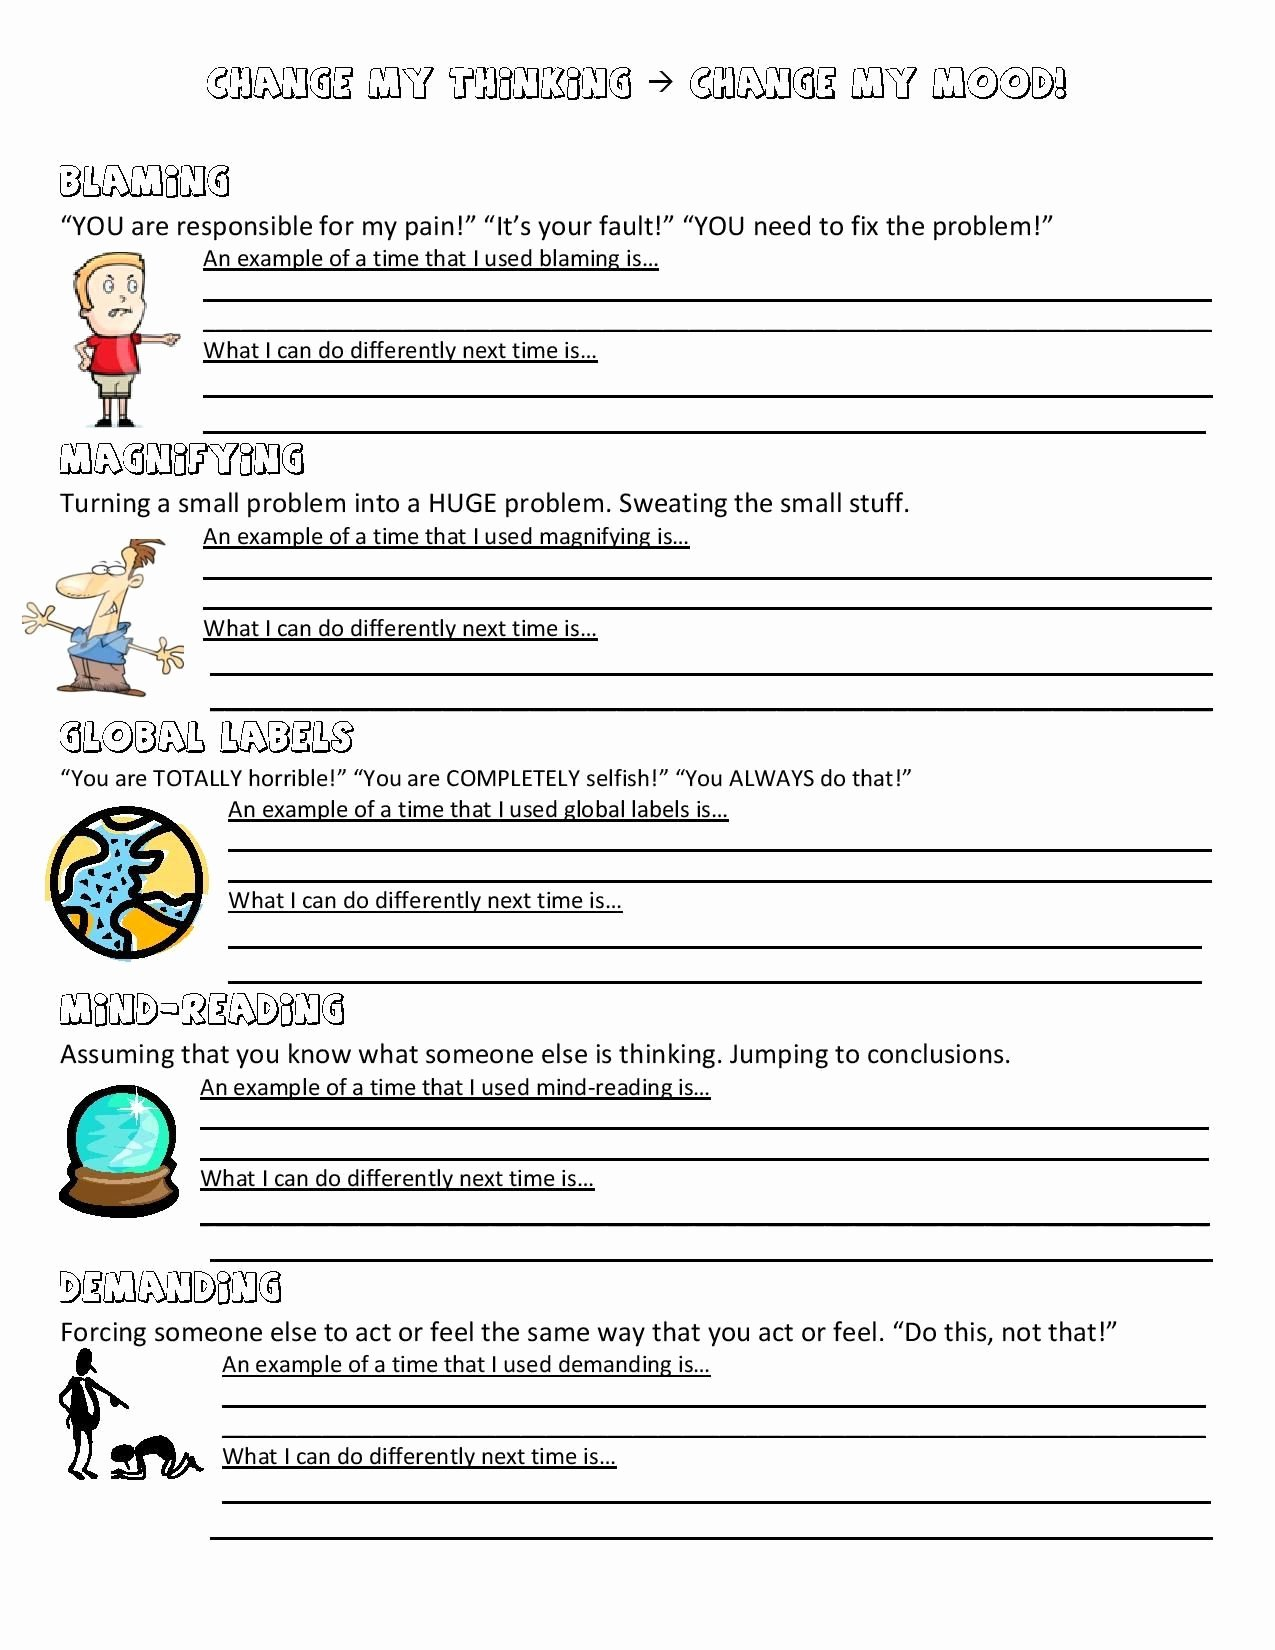 psychology worksheets for highschool students ot mental health worksheets printables of psychology worksheets for highschool students